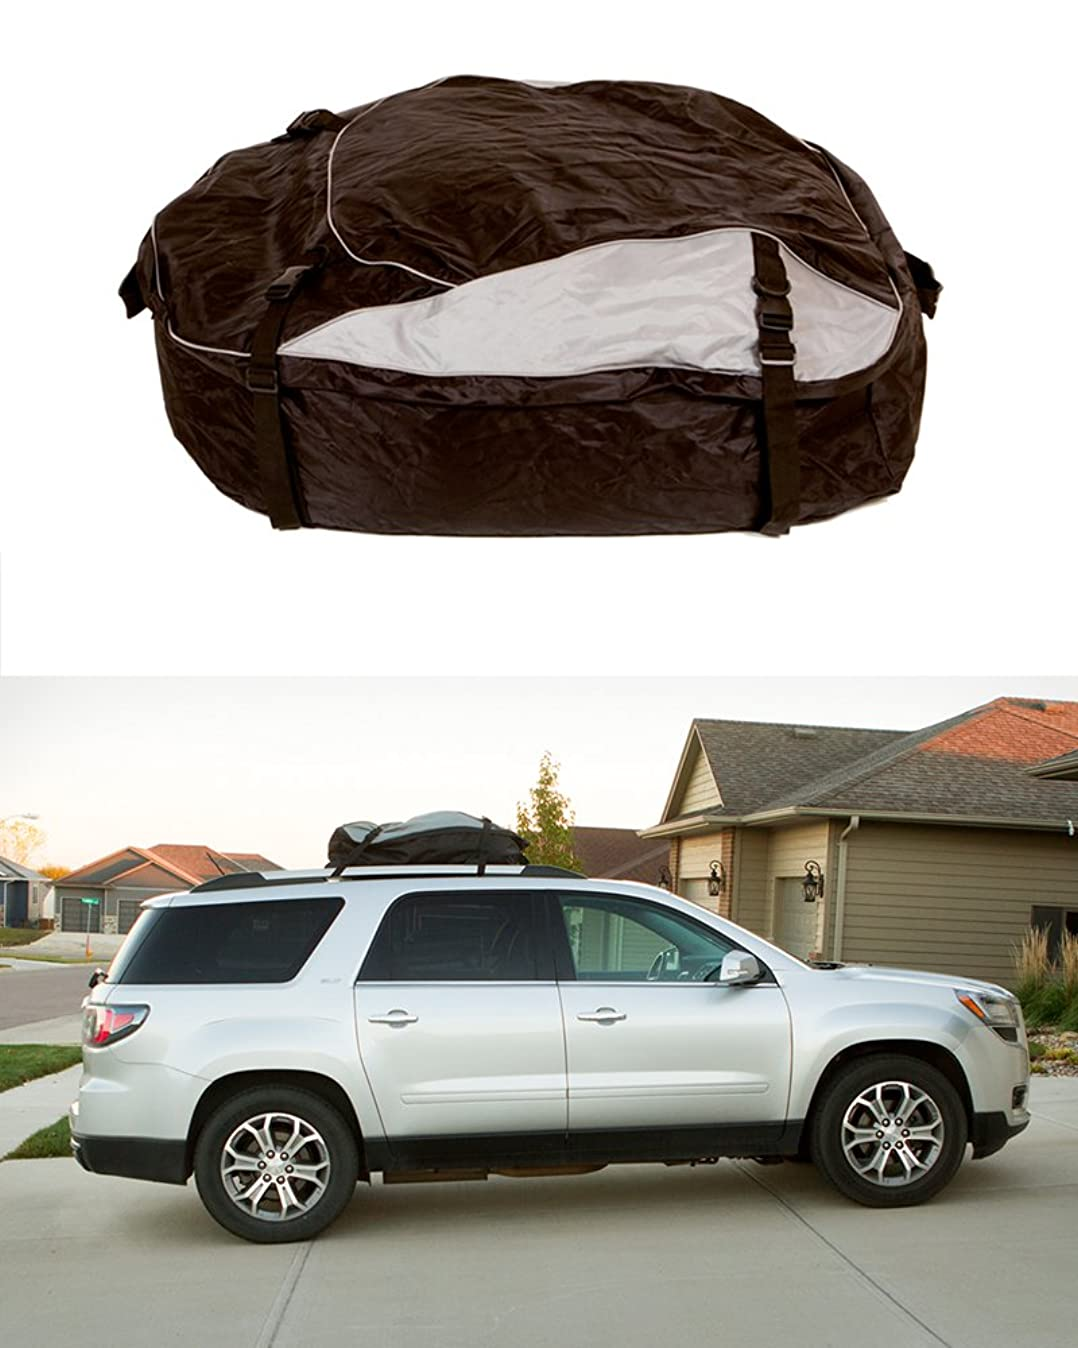 ABN Vehicle Roof Cargo Carrier Roof Bag – Extra-Large XL 12' Cubic Feet Car Rooftop Cargo Carrier Travel Luggage Bag u3314730614